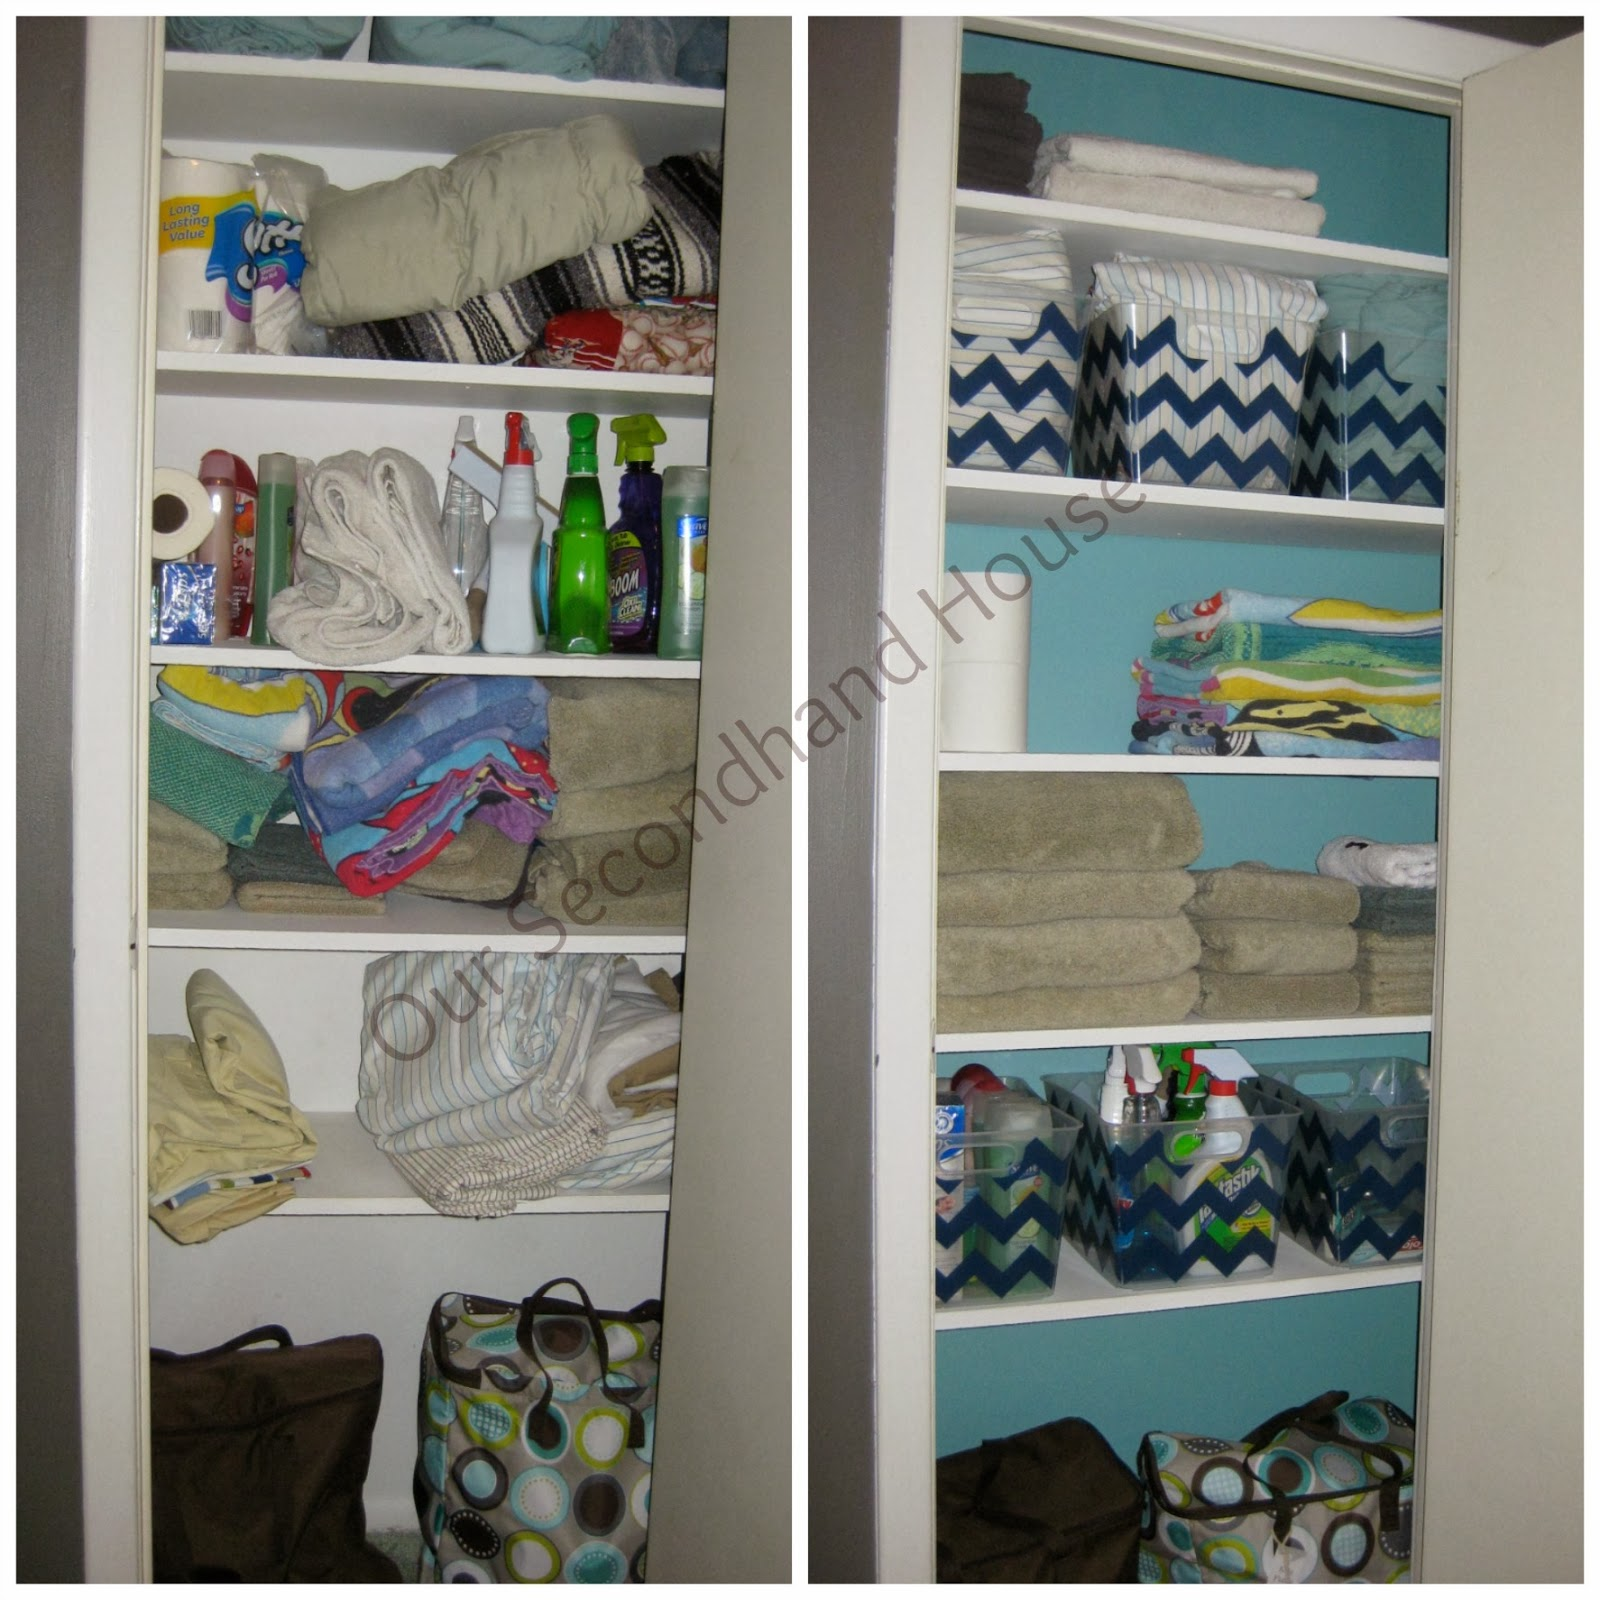 Linen Closet Organization - Our Secondhand House